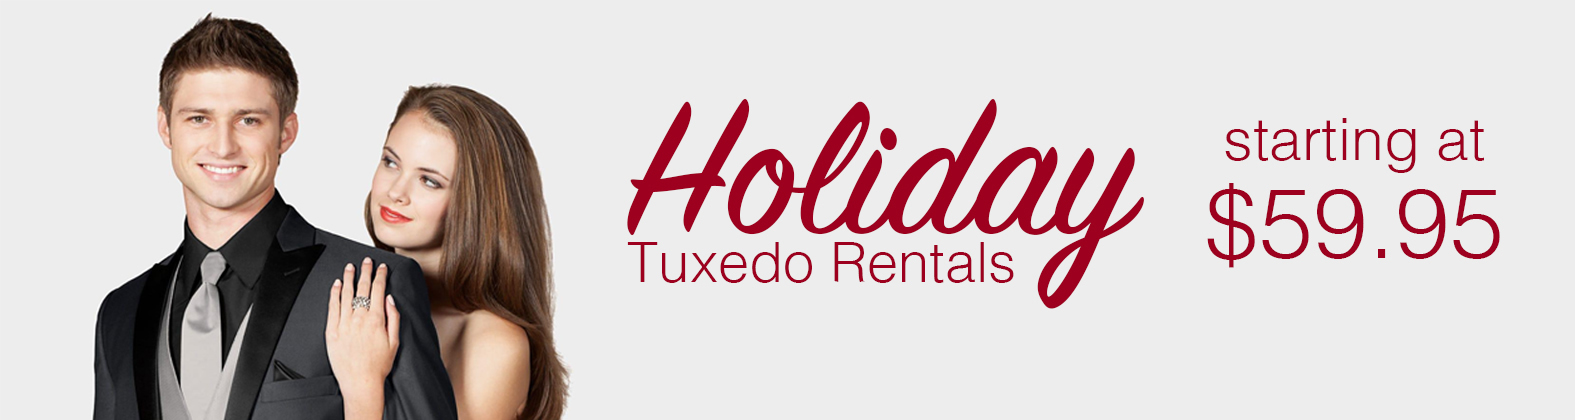 How to Open a Tuxedo Renting Business foto